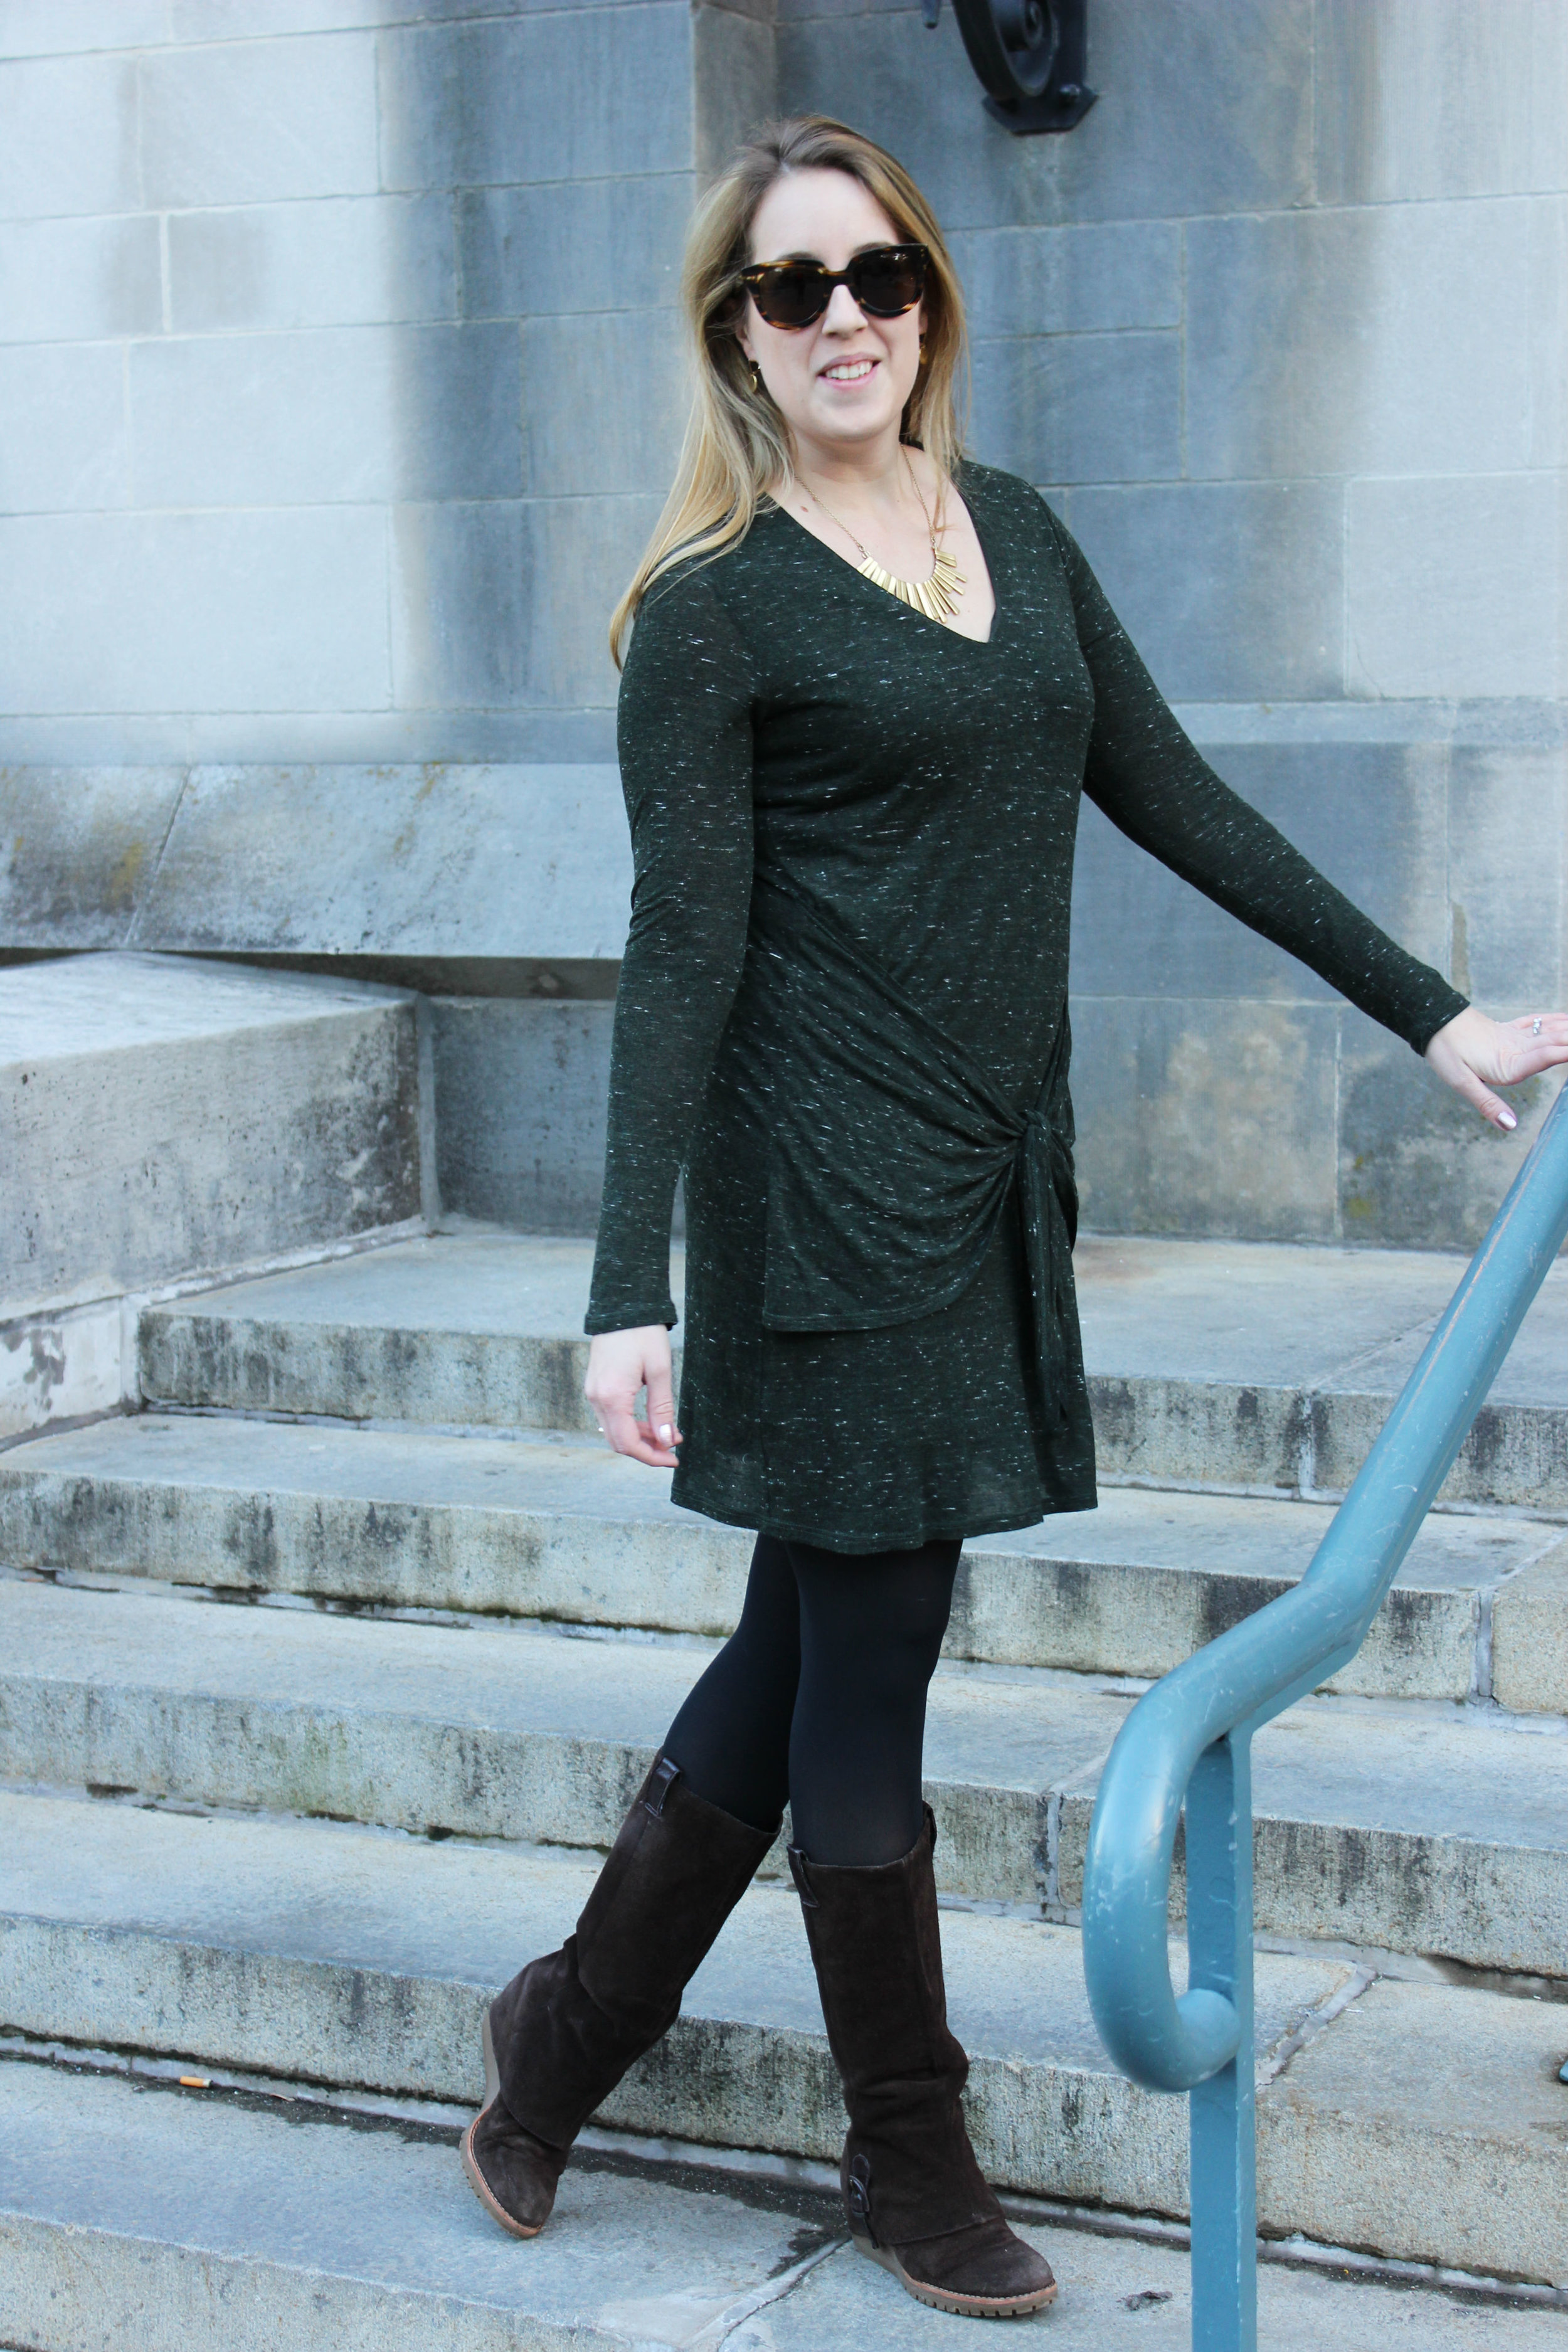 Wearing: Winter Work Dress in Green